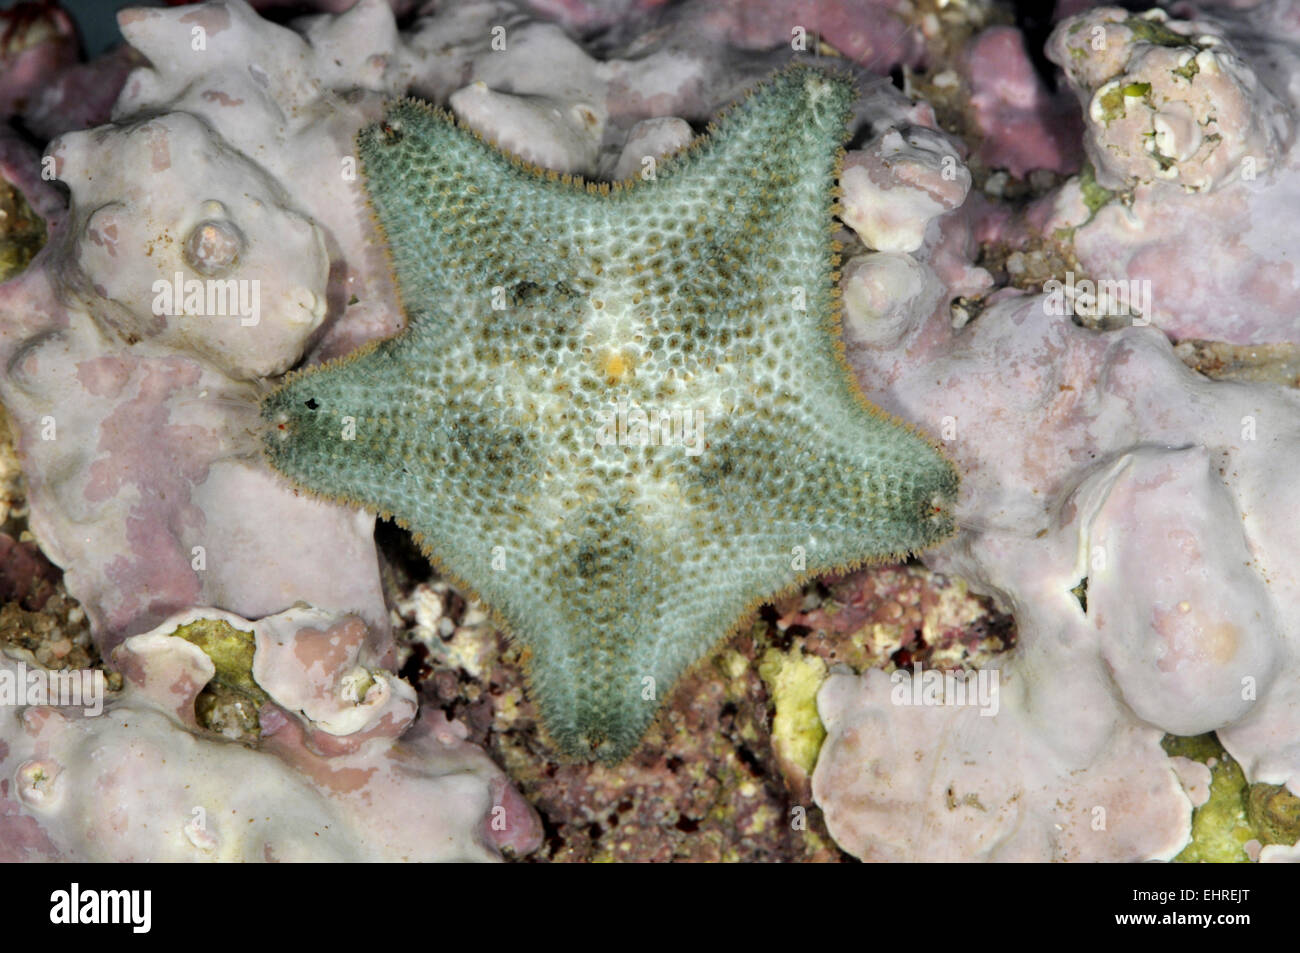 Asterina gibbosa coussin Star - Photo Stock